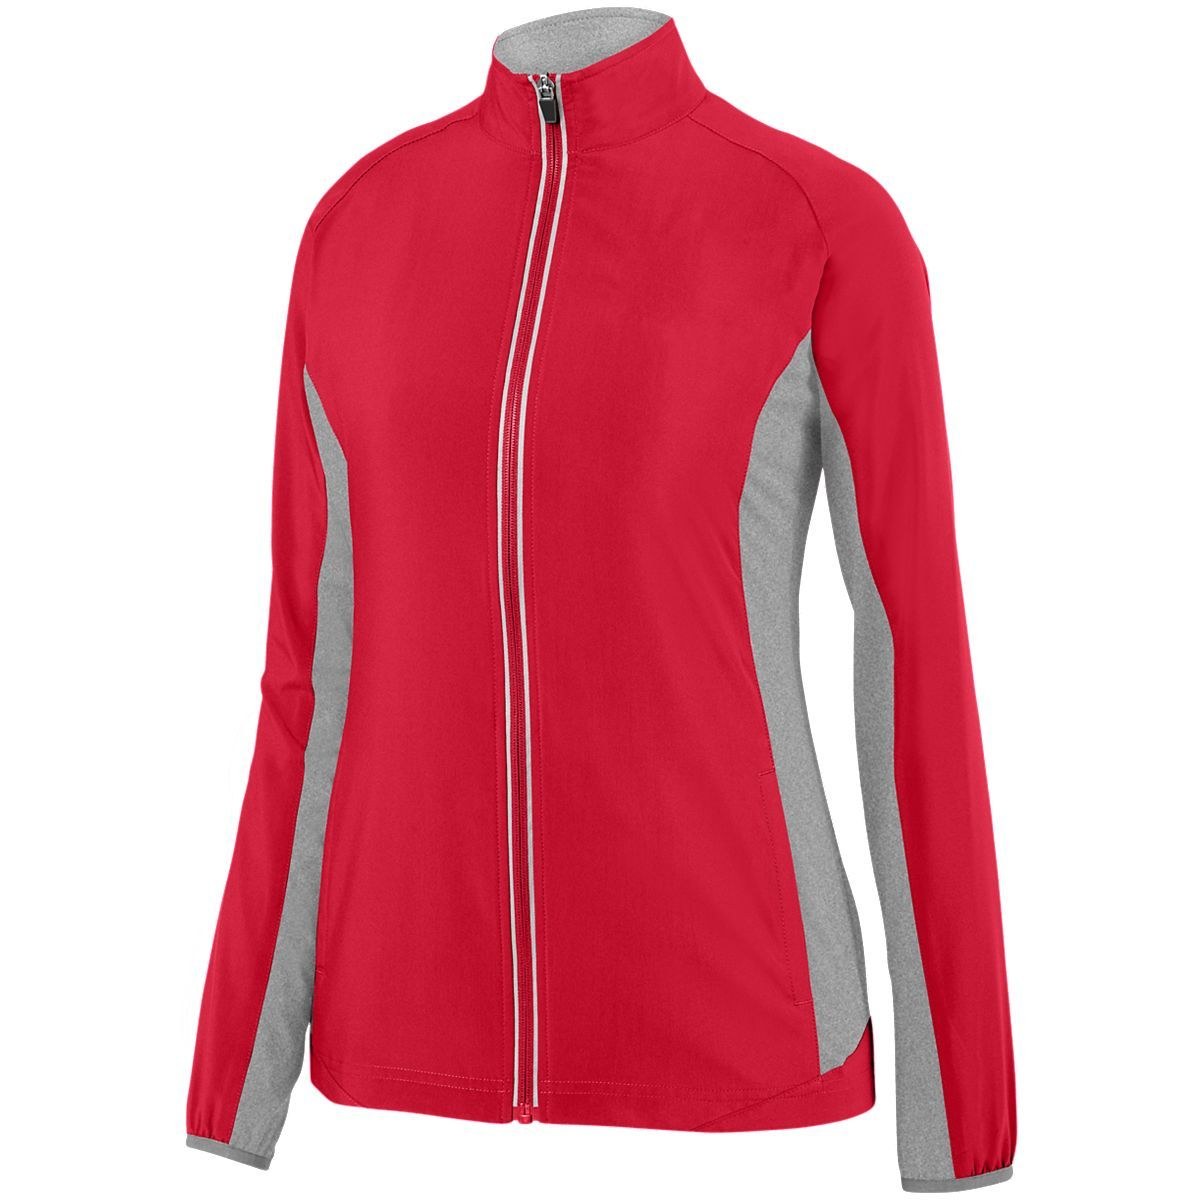 Ladies Preeminent Jacket - RED/GRAPHITE HEATHER